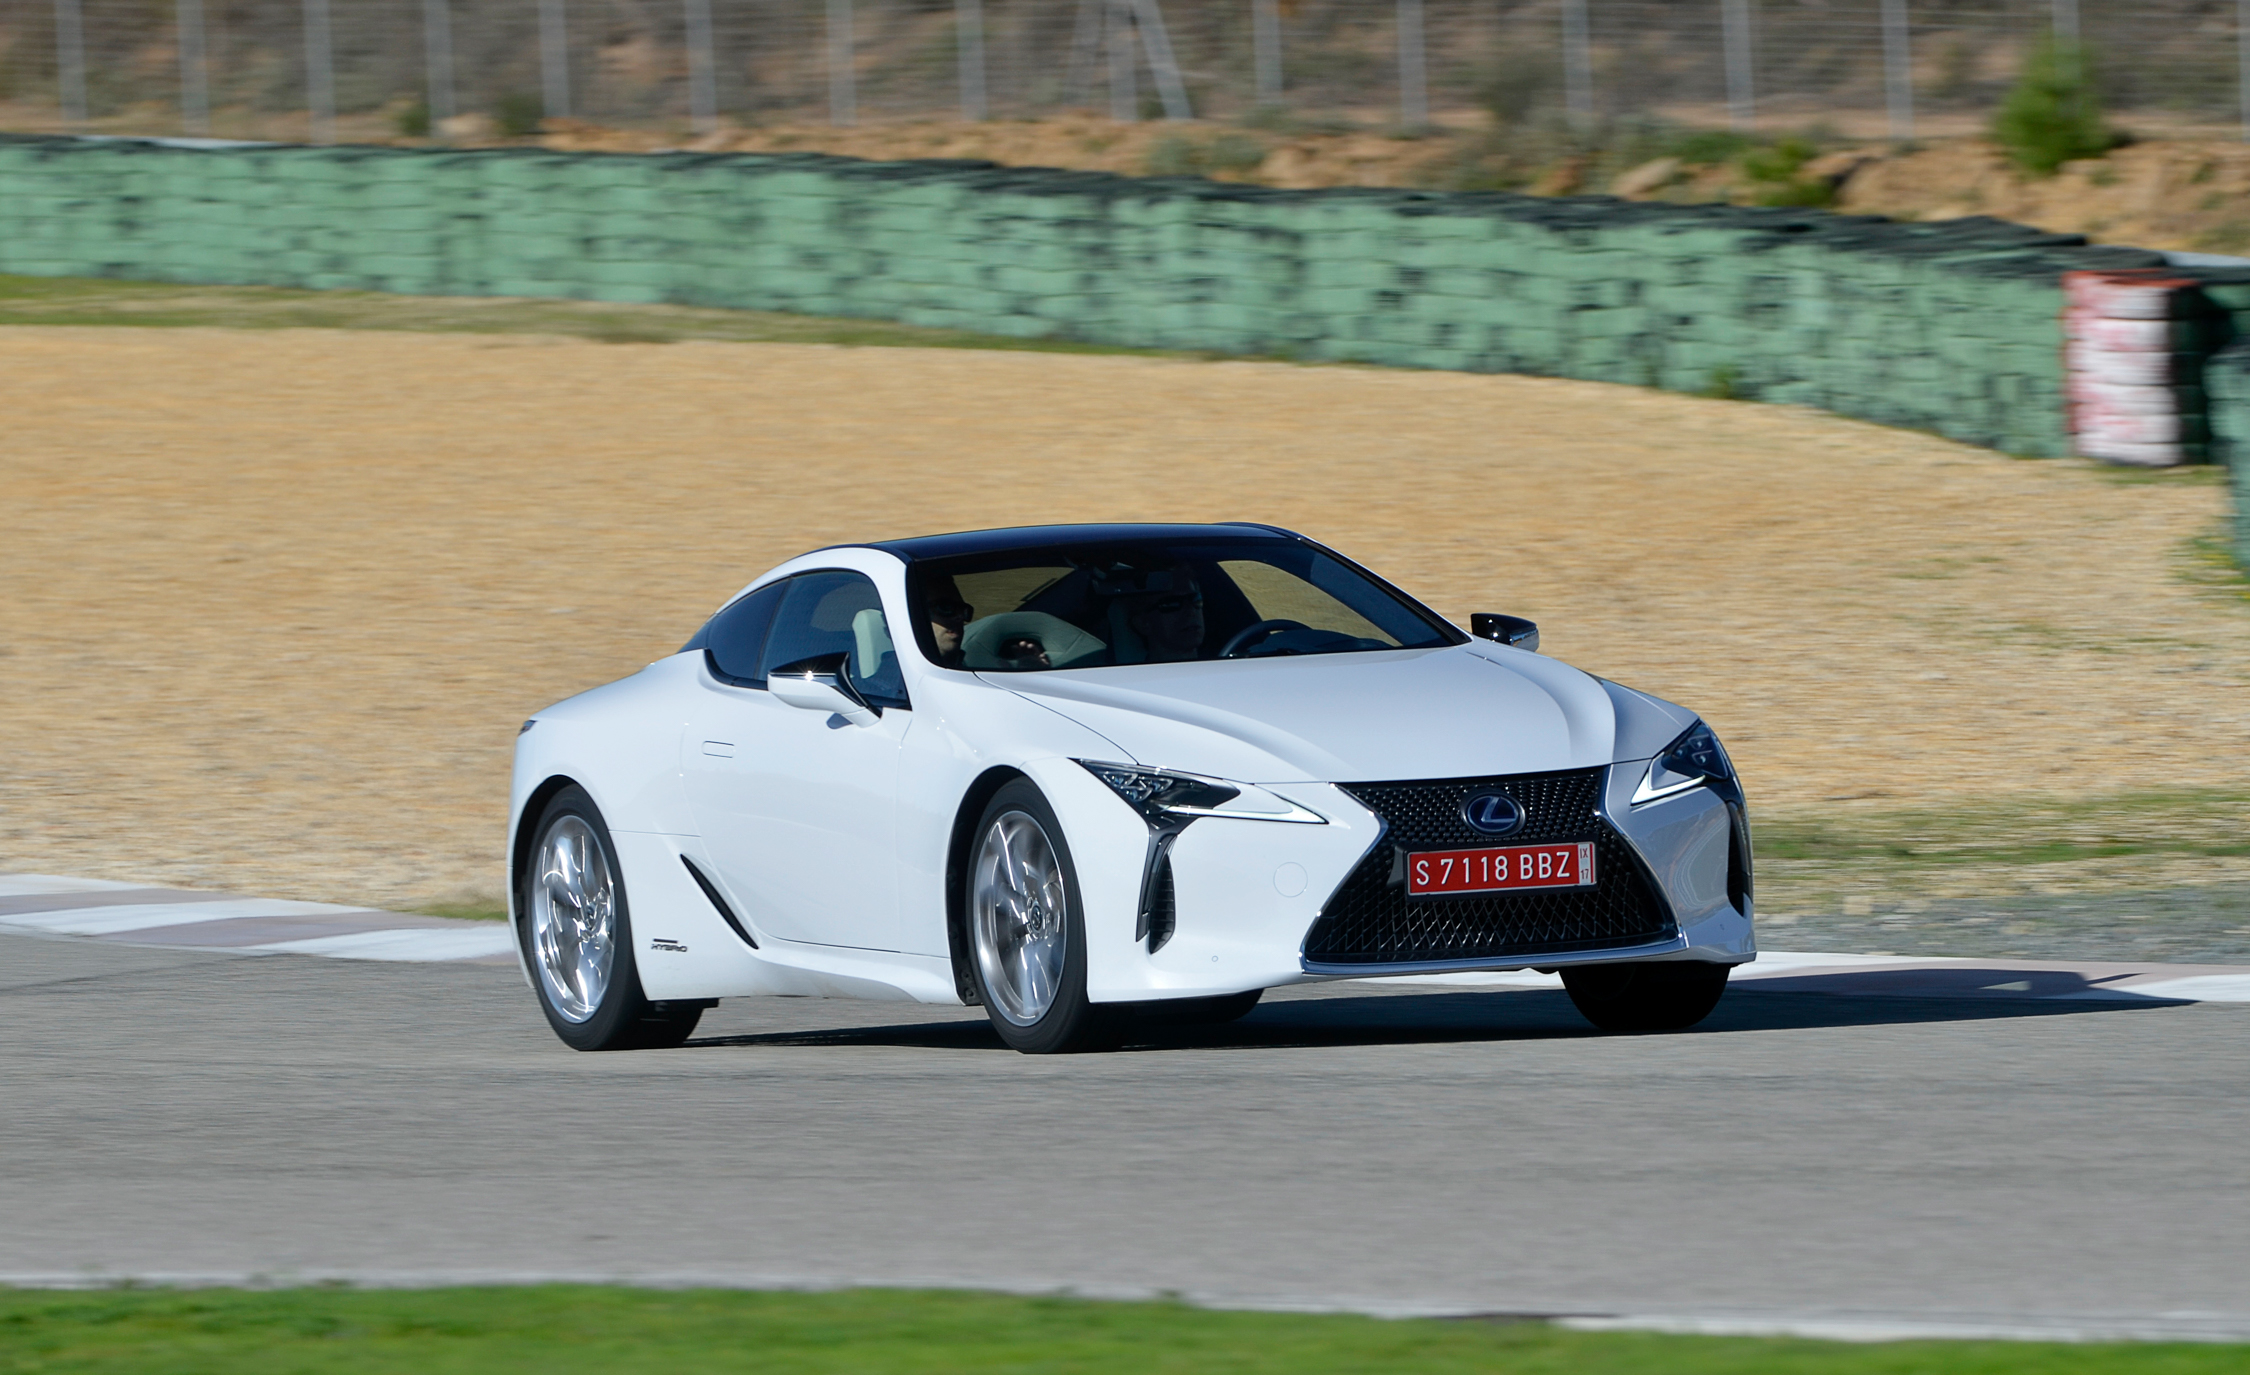 2018 Lexus Lc 500h White Test Drive (View 26 of 84)